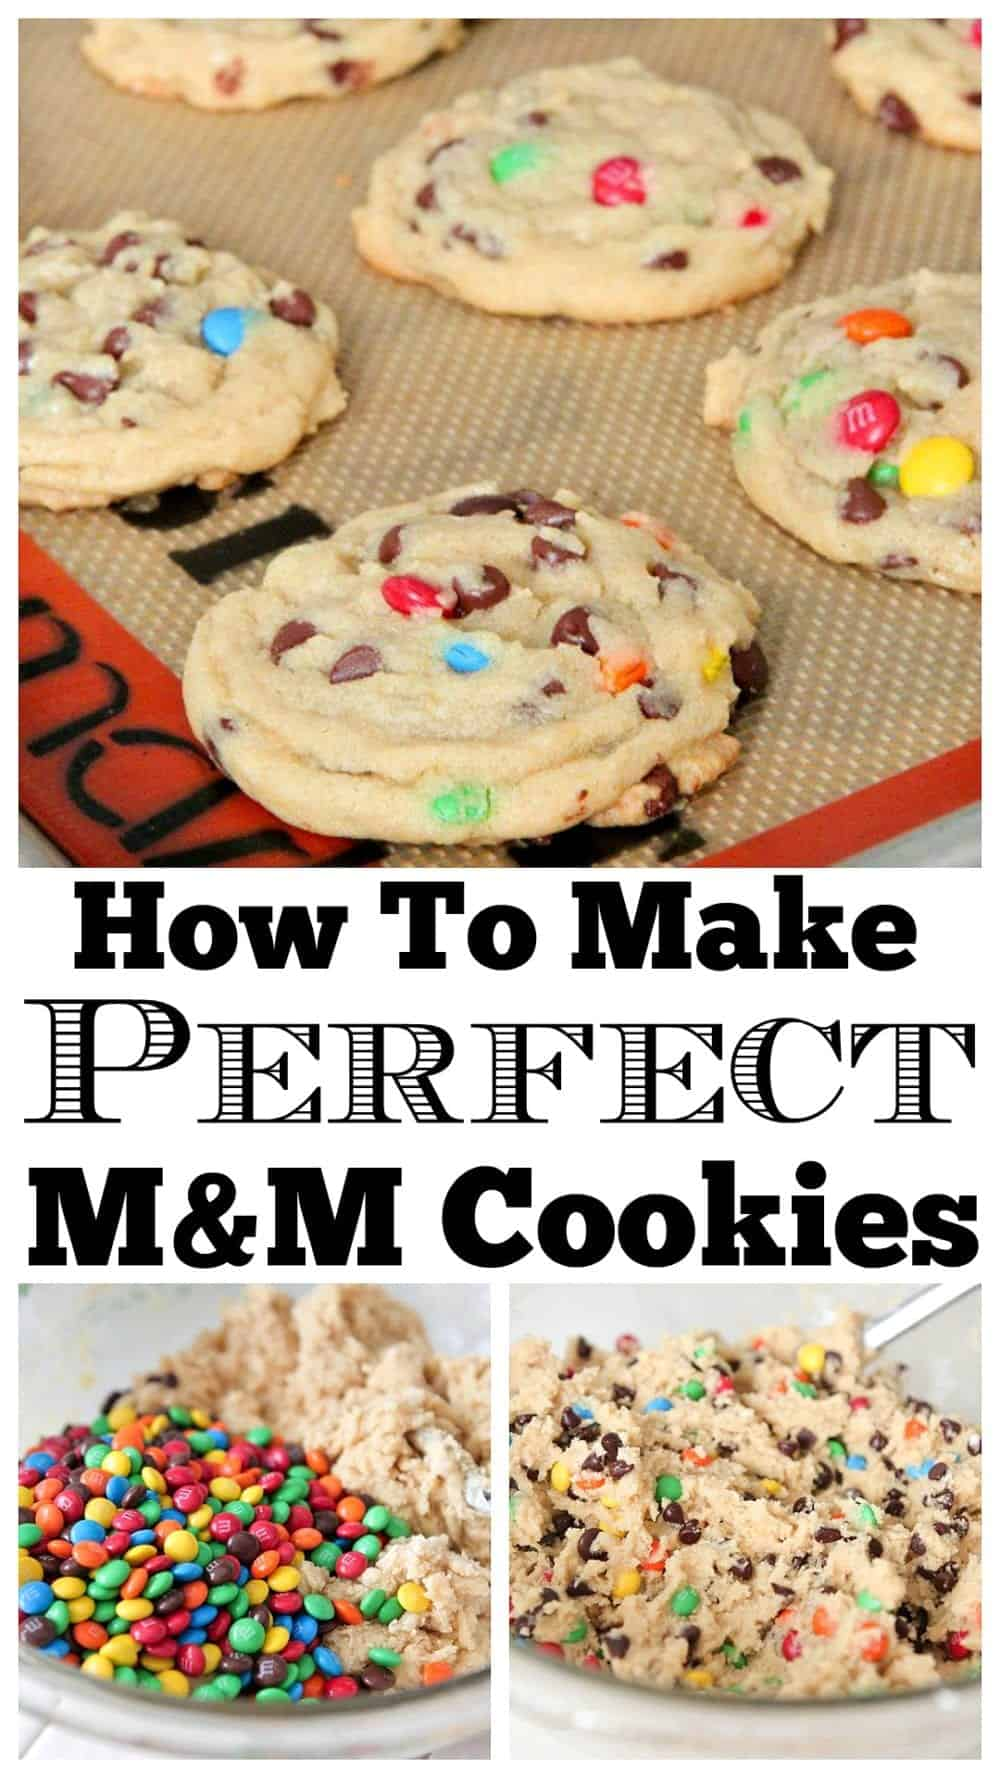 photo collage of m&m cookies